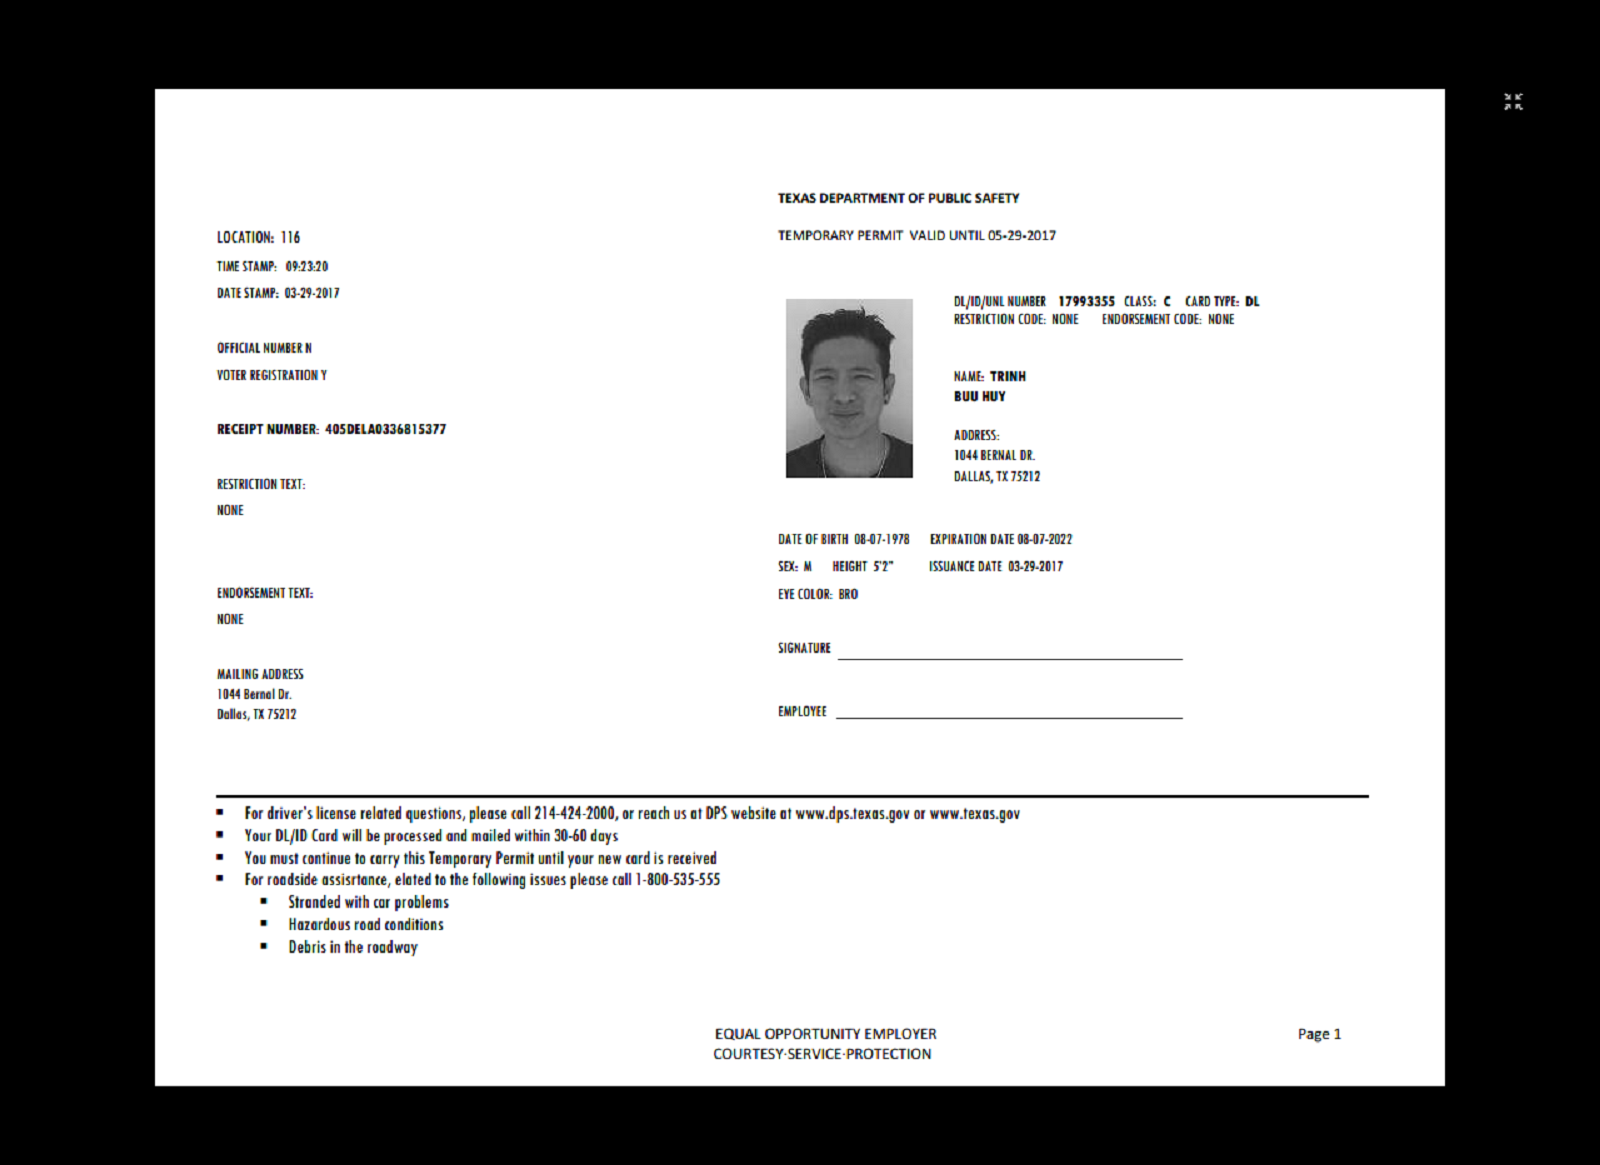 texas temporary drivers license template driver 39 s permit texas temp in 2018 fake documents